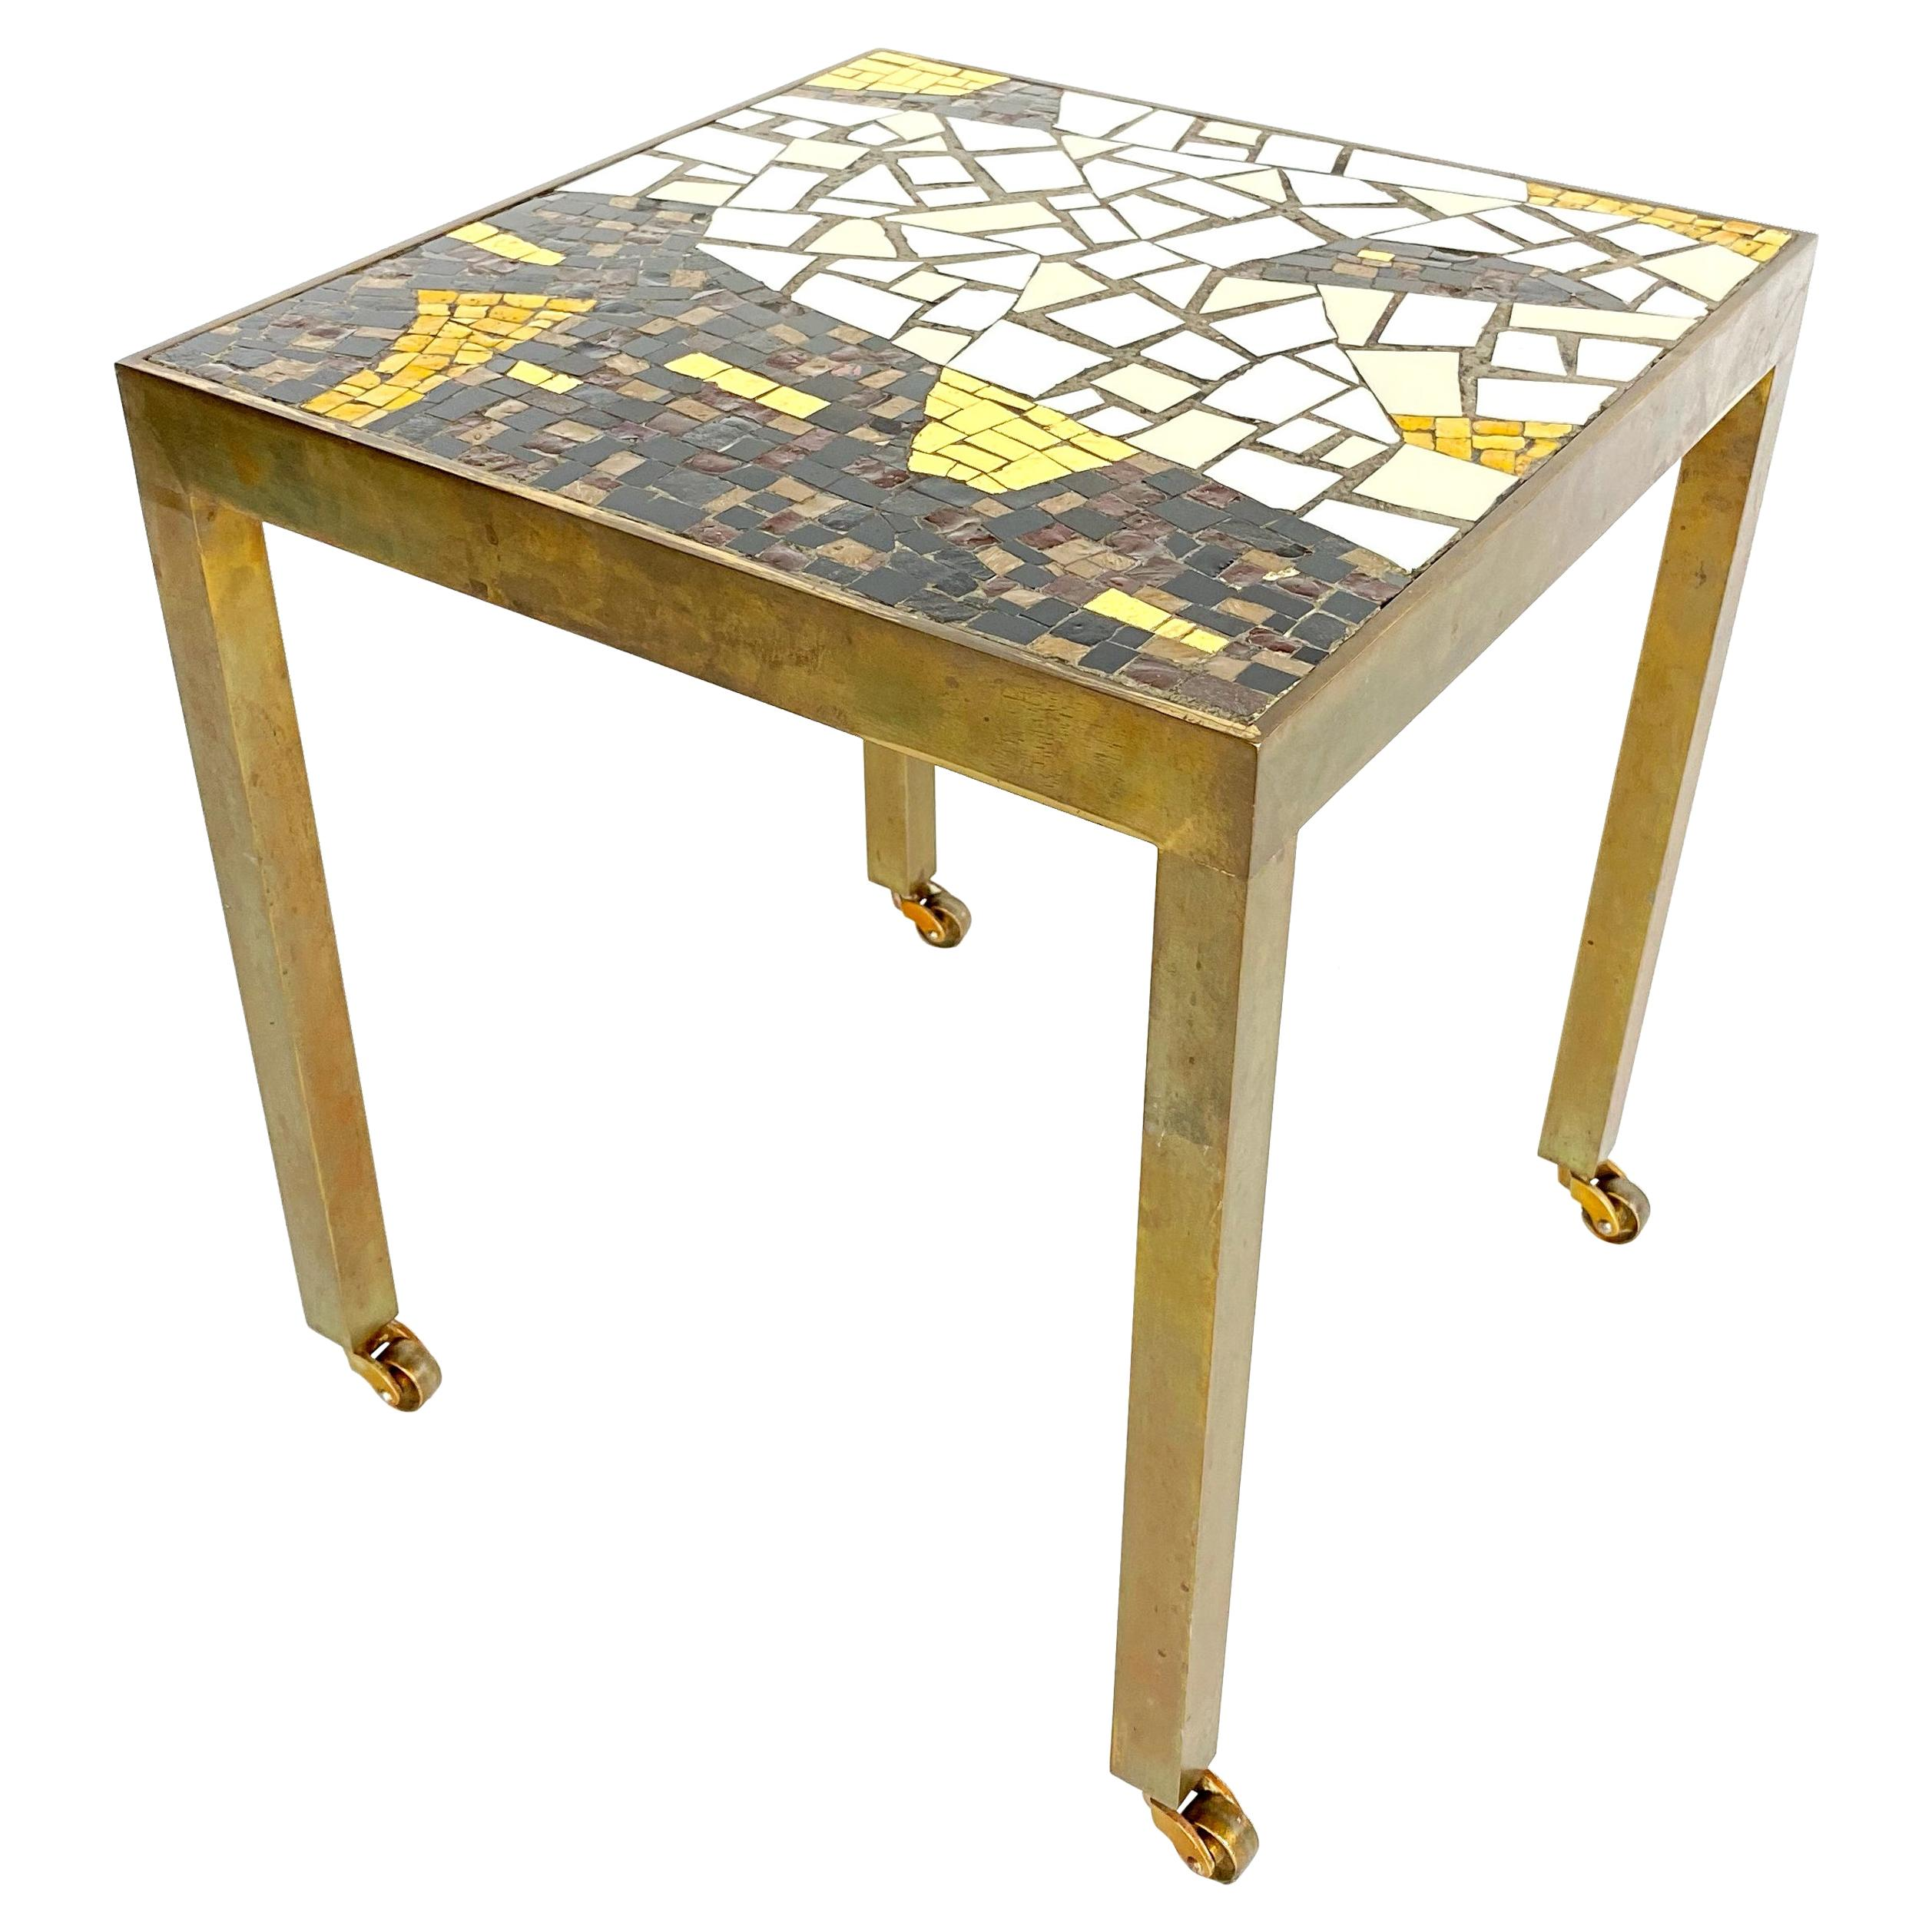 Midcentury Brass Terrazzo Mosaic Side Table, 1950s, Italy